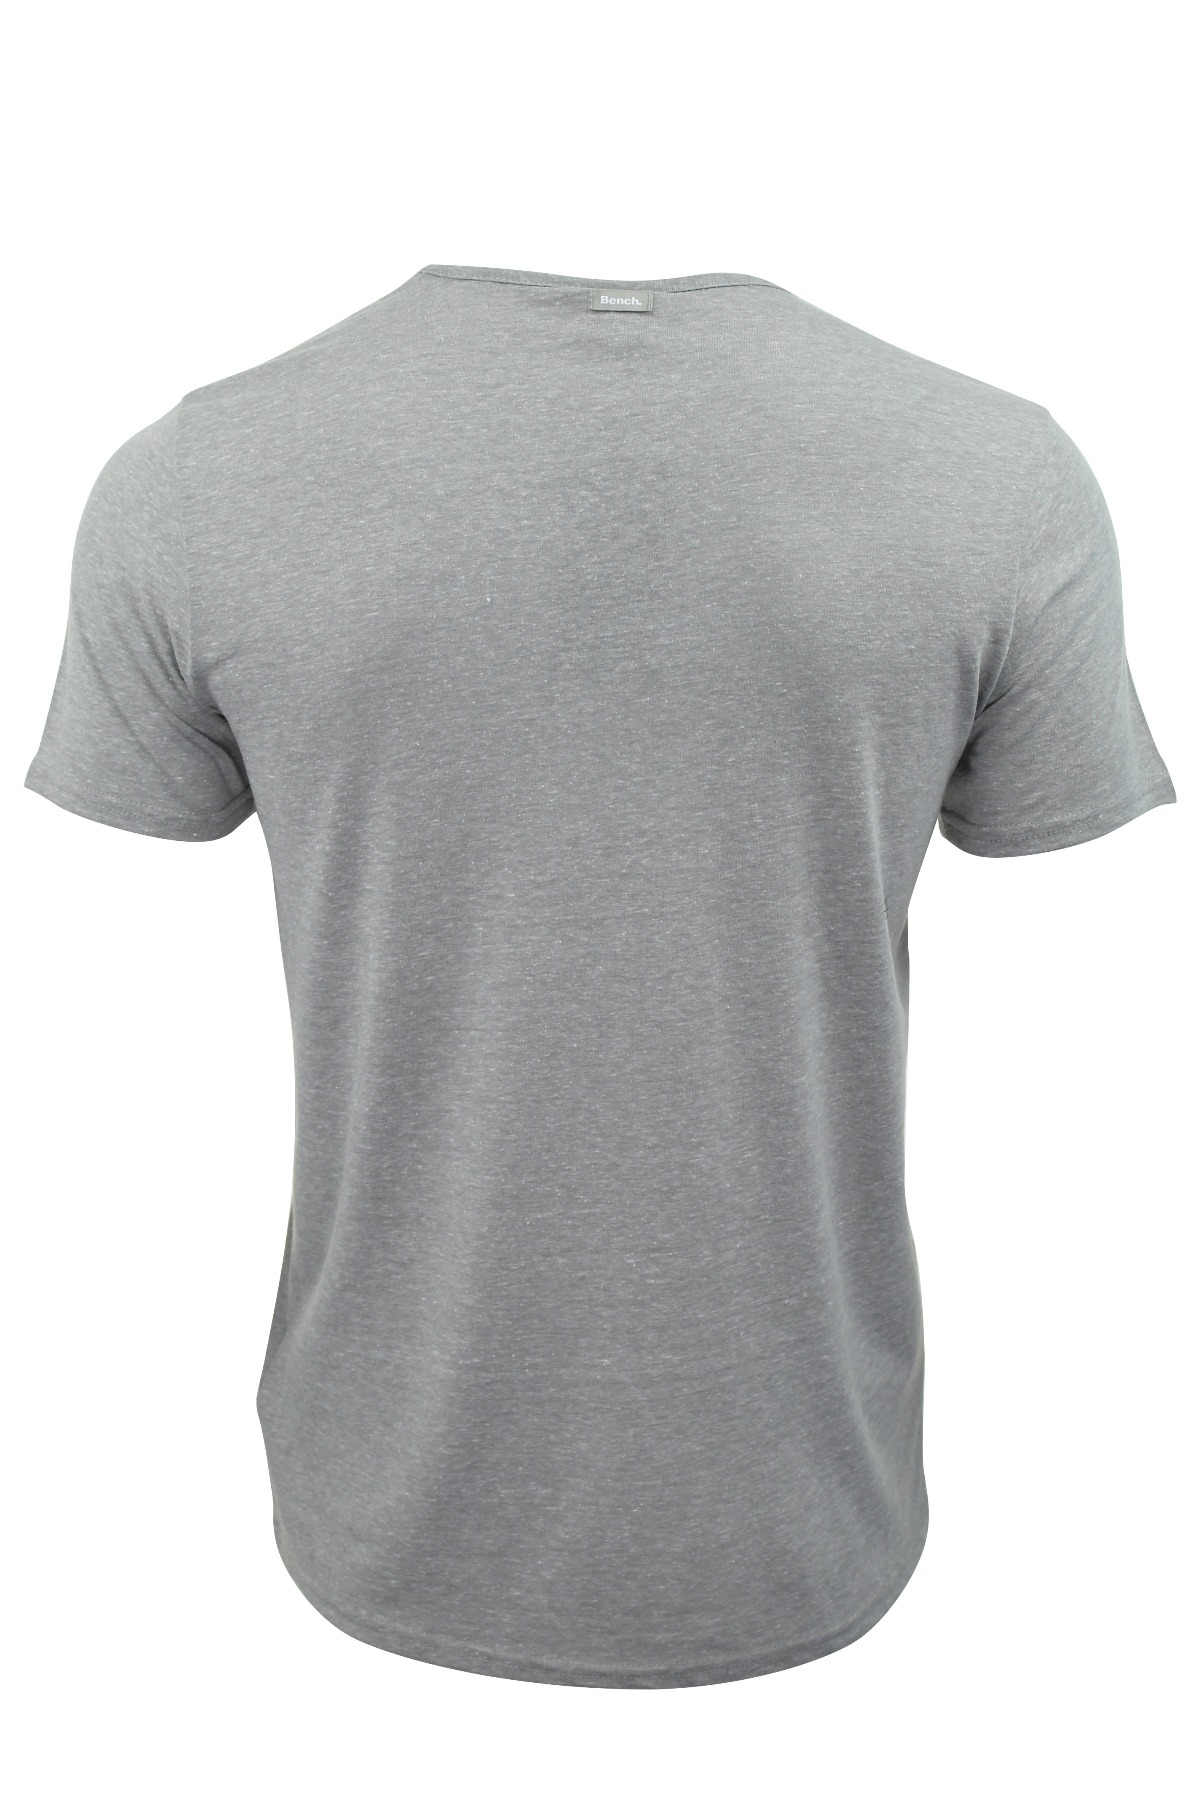 Mens T Shirt Bench 'City Route' Short Sleeved